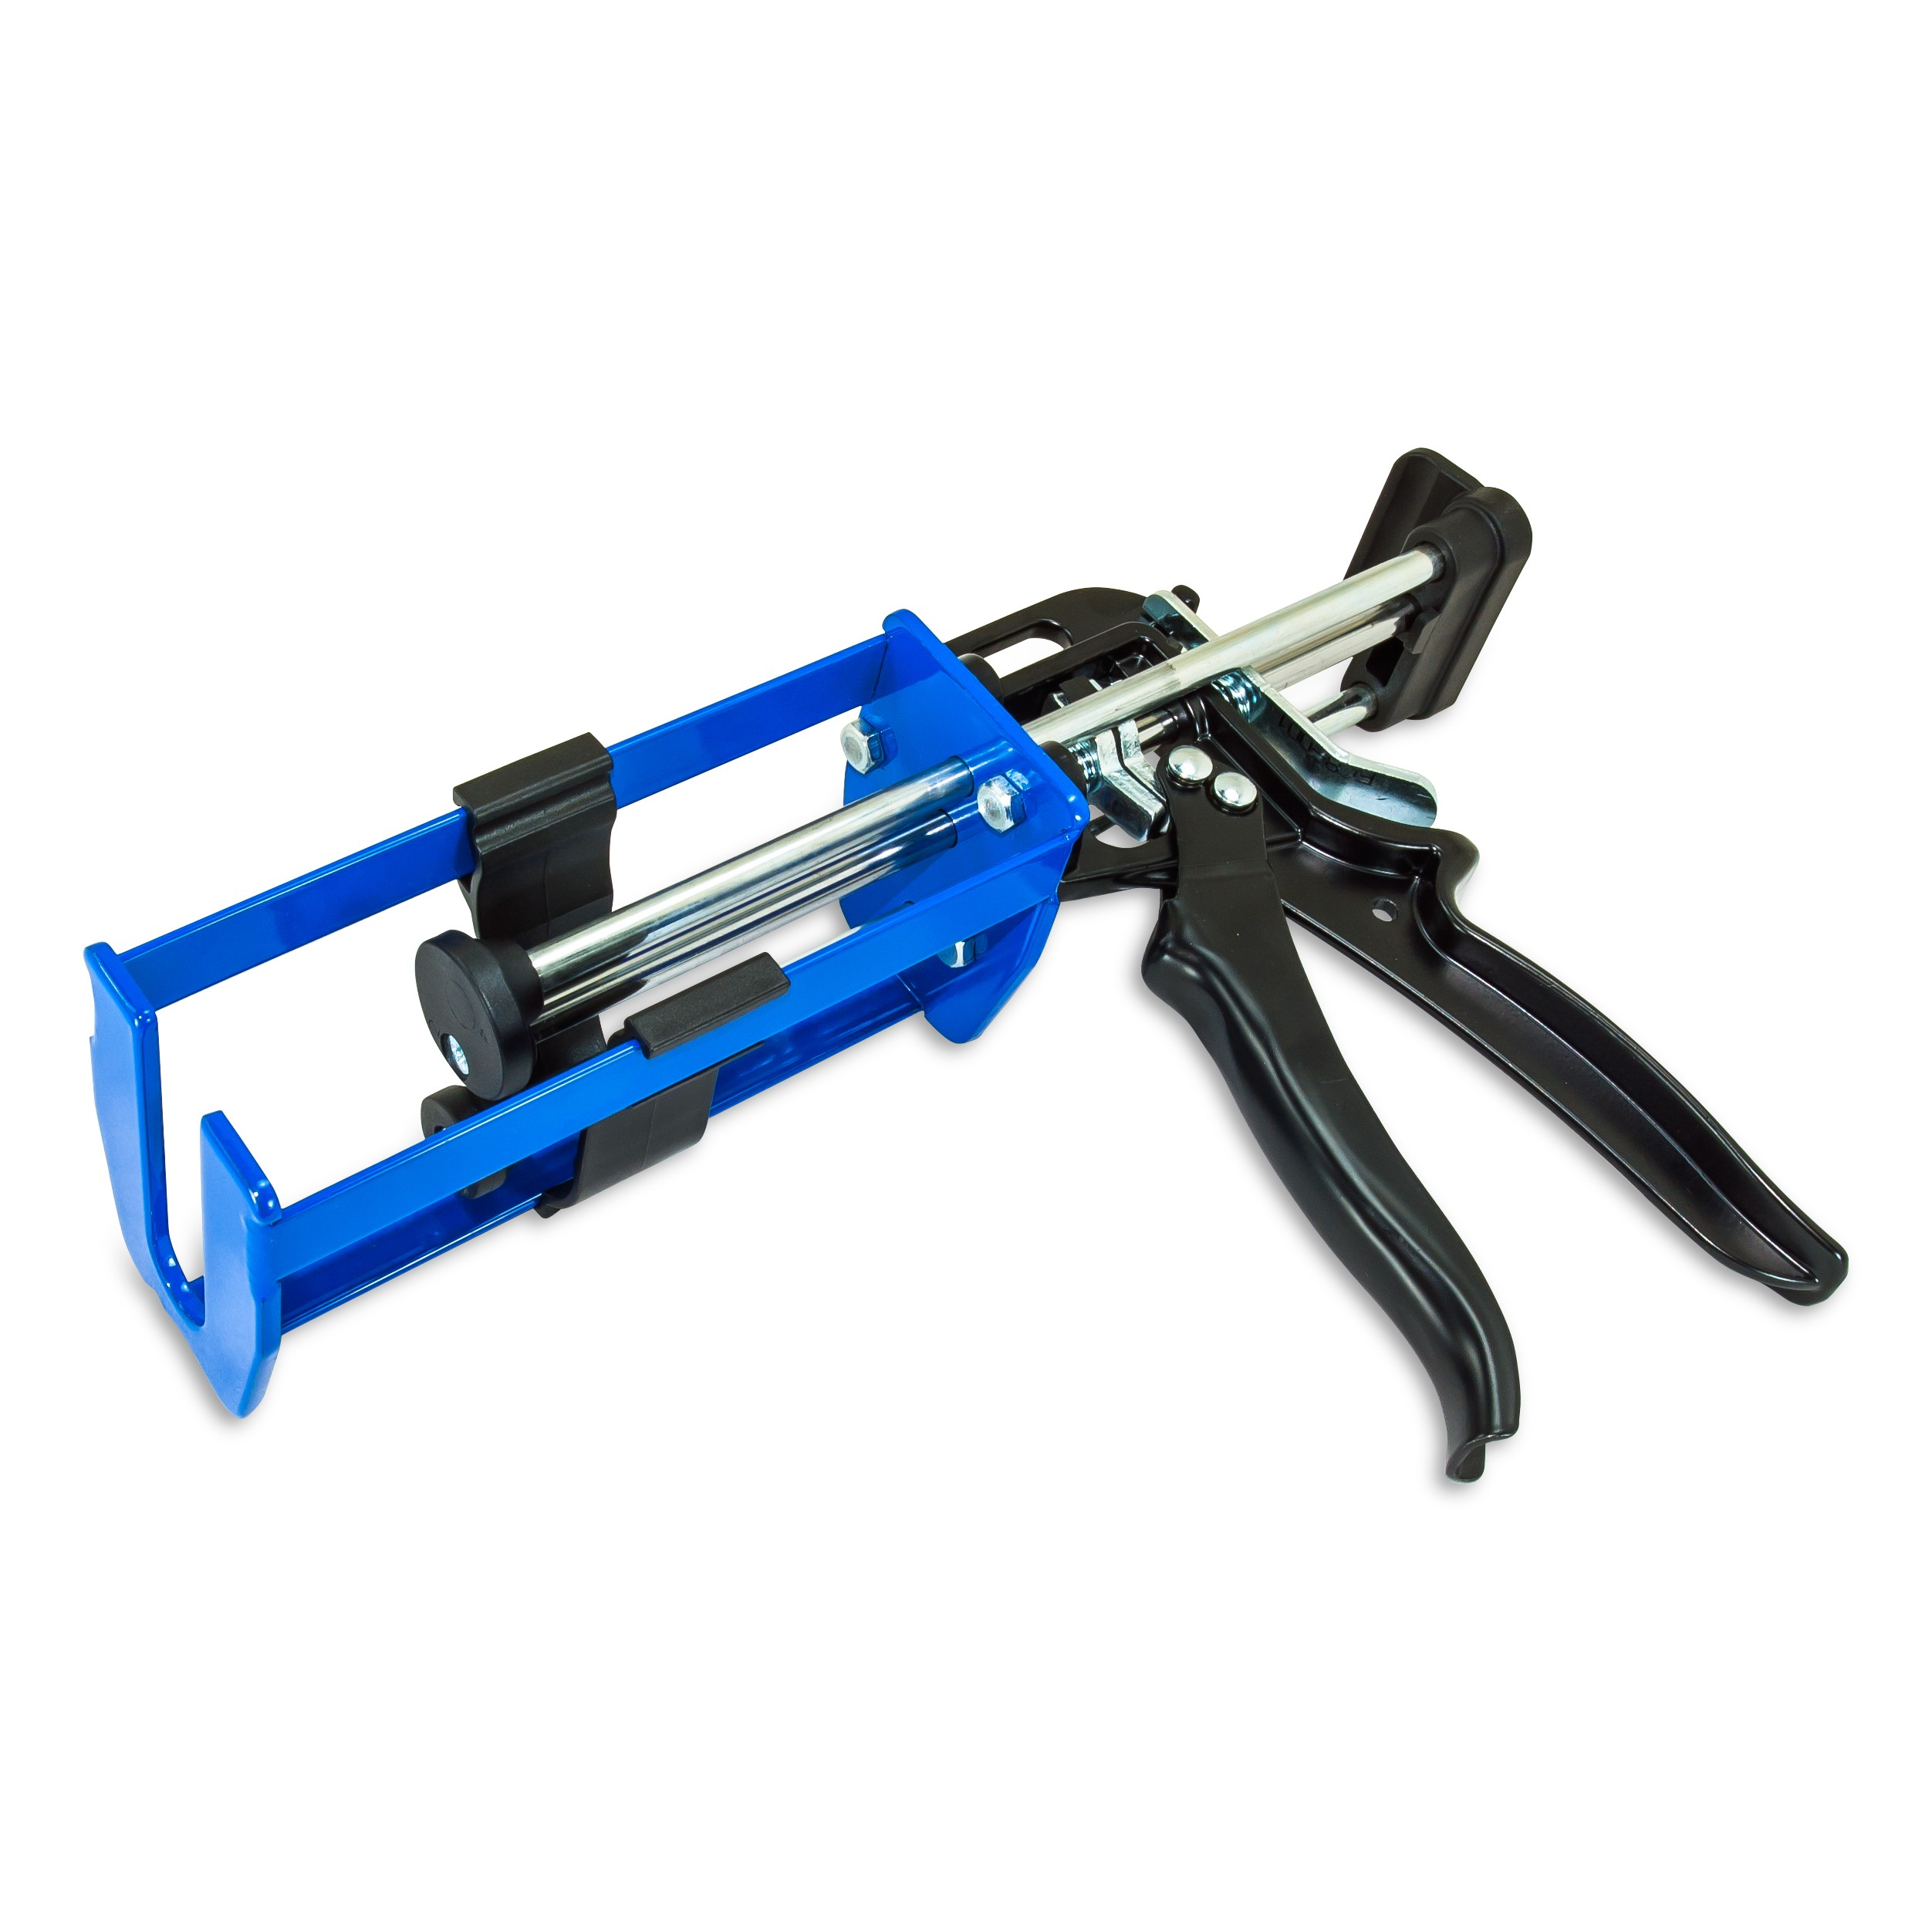 200mL Dual Cartridge Caulking Gun